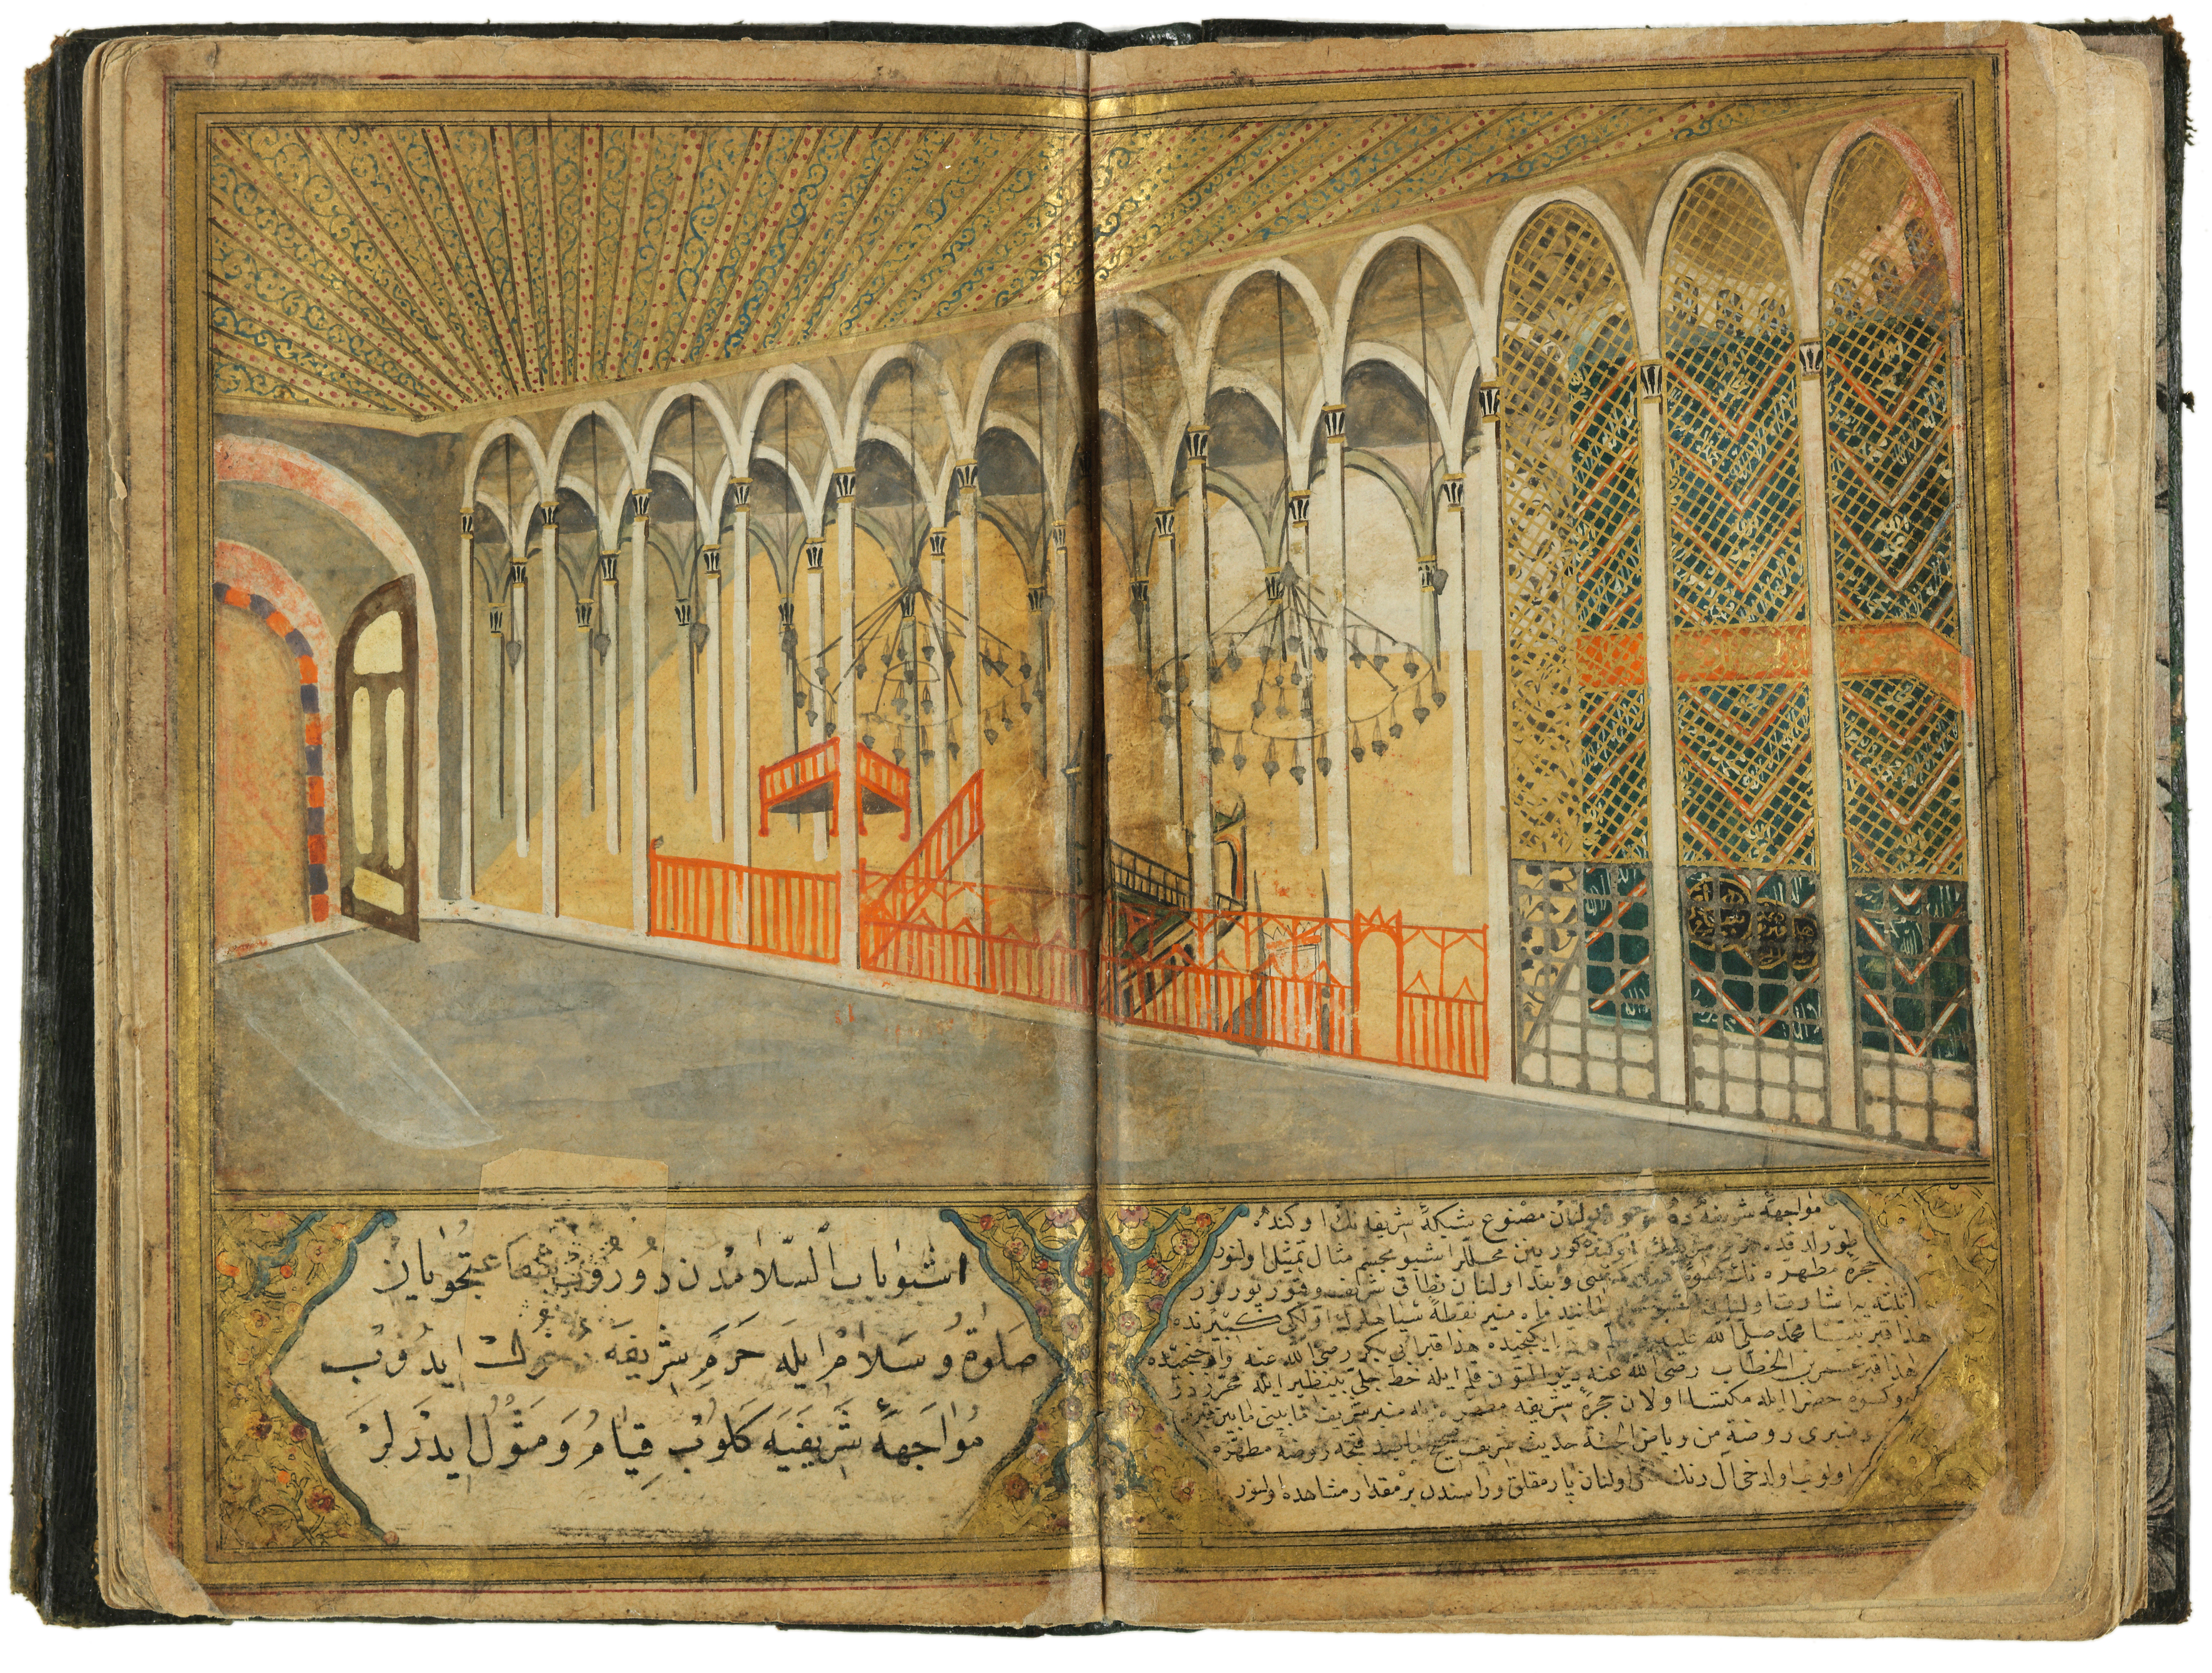 View of the outside of the Prophet's tomb, from a copy of al-Jazuli's Dala'il al-khayrat